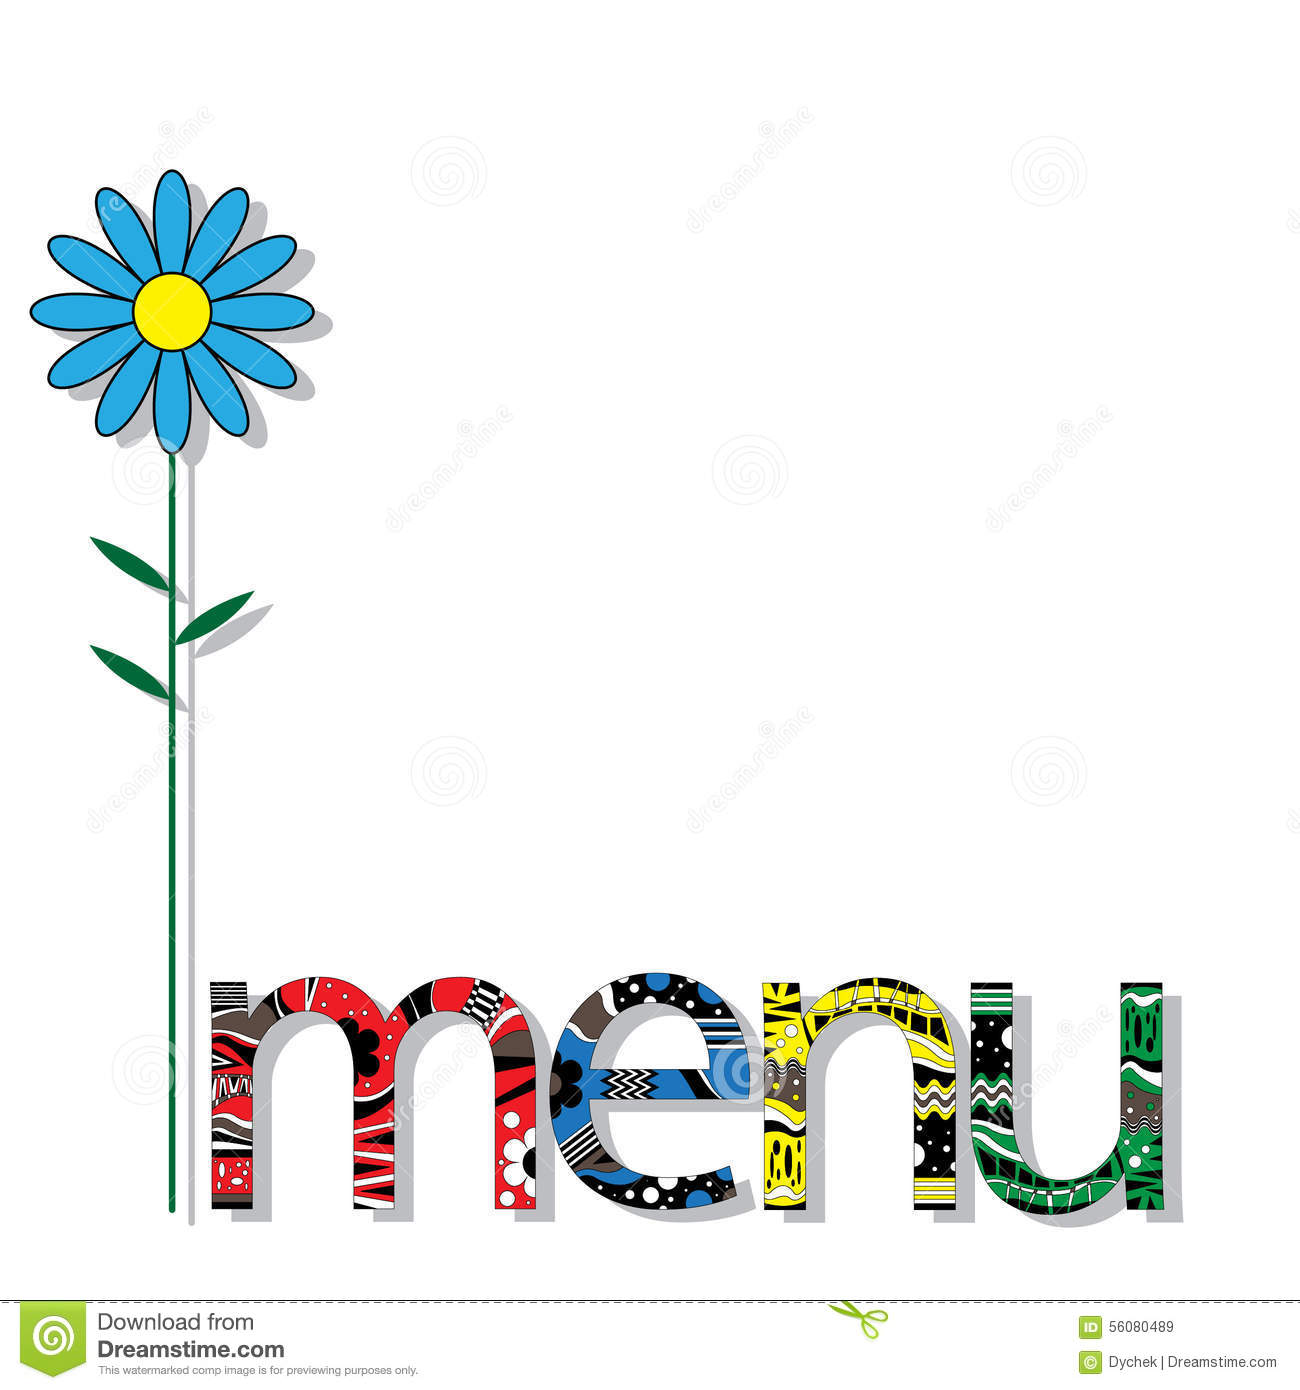 The Original Spelling Of The Word Menu. Stock Vector - Image: 56080489